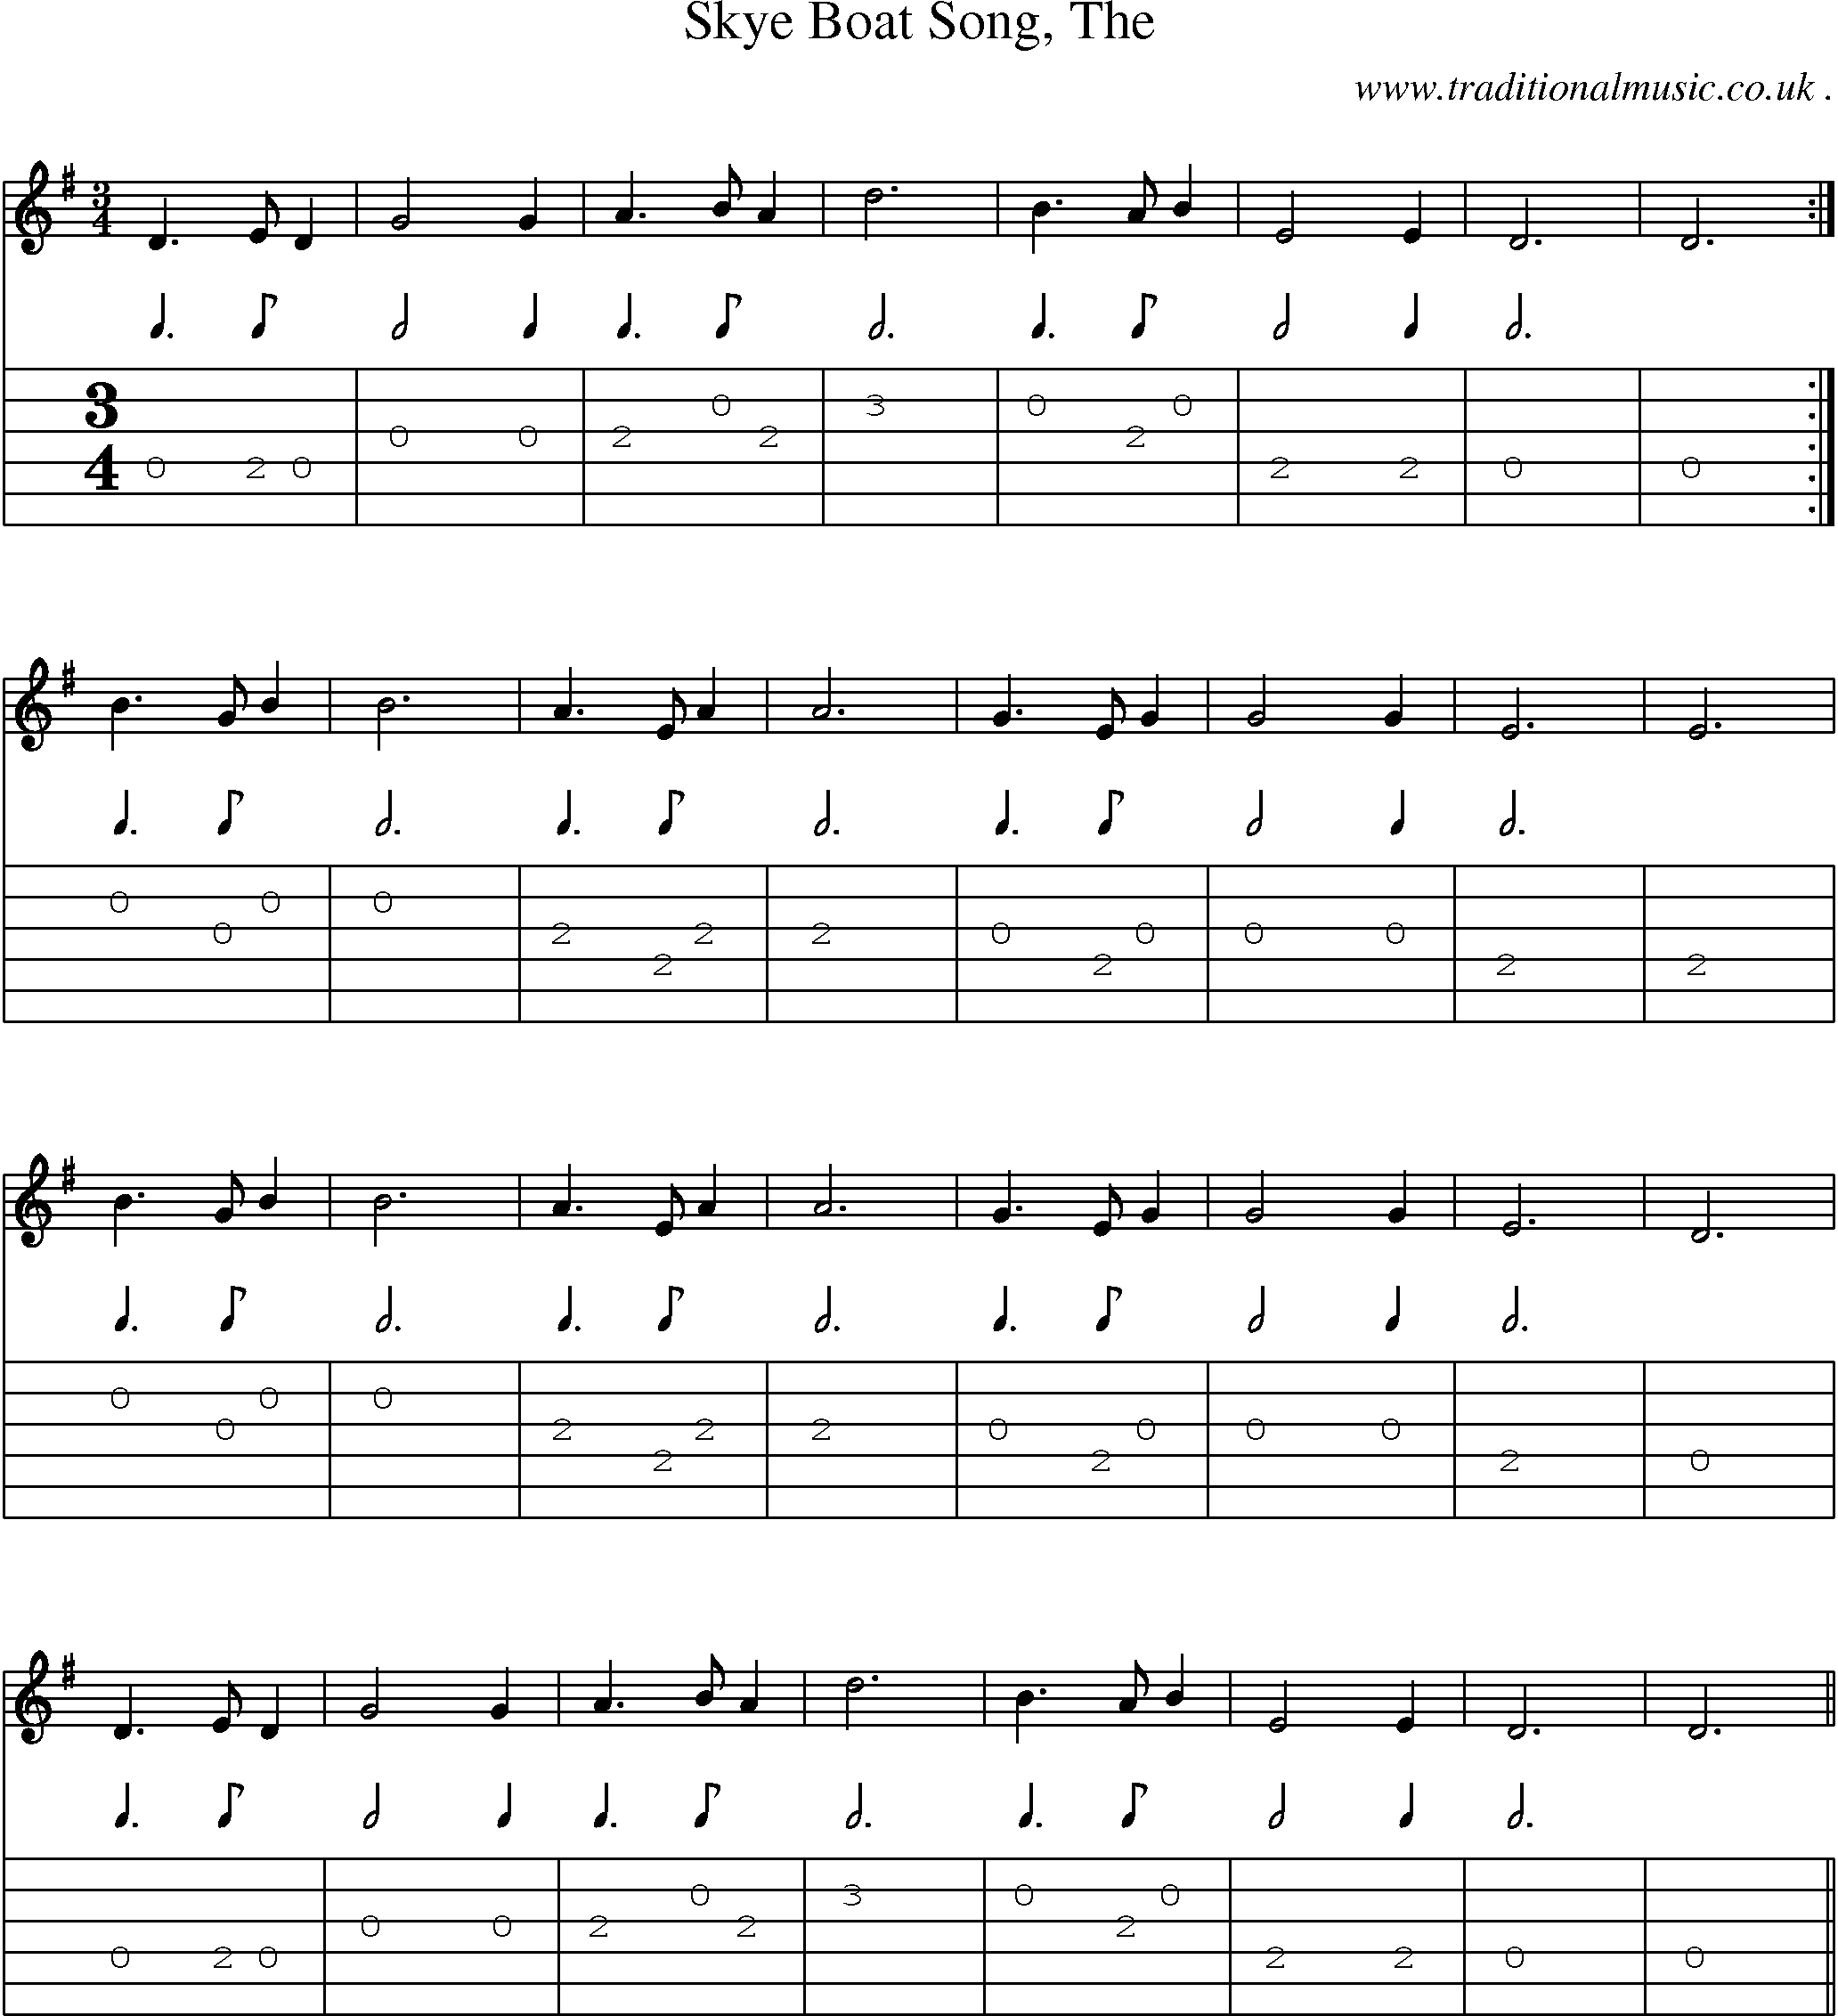 Sheet Music Score Chords And Guitar Tabs For Skye Boat Song The